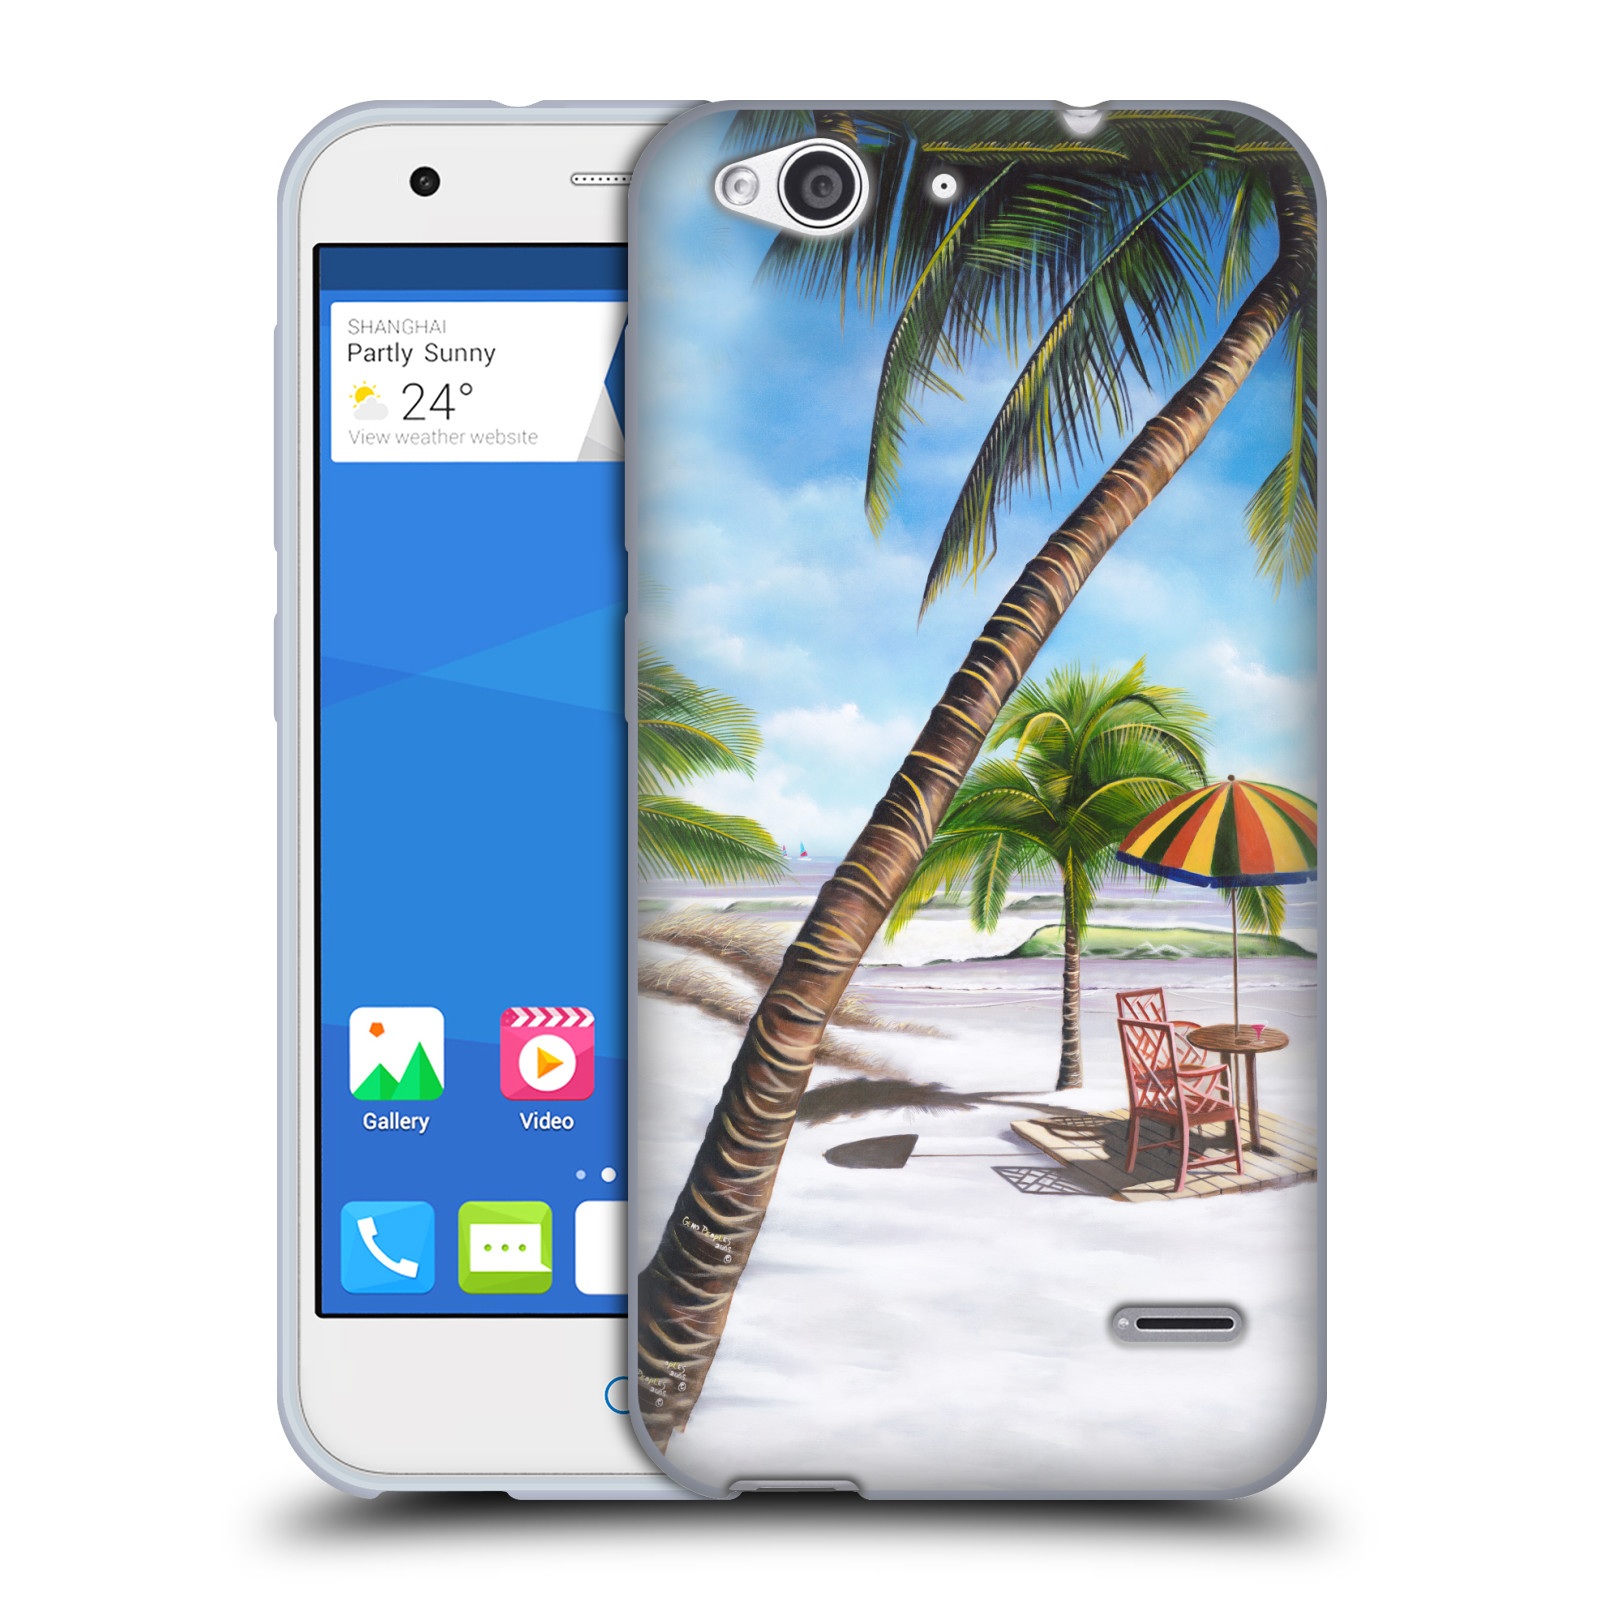 OFFICIAL-GENO-PEOPLES-ART-HOLIDAY-SOFT-GEL-CASE-FOR-ZTE-PHONES